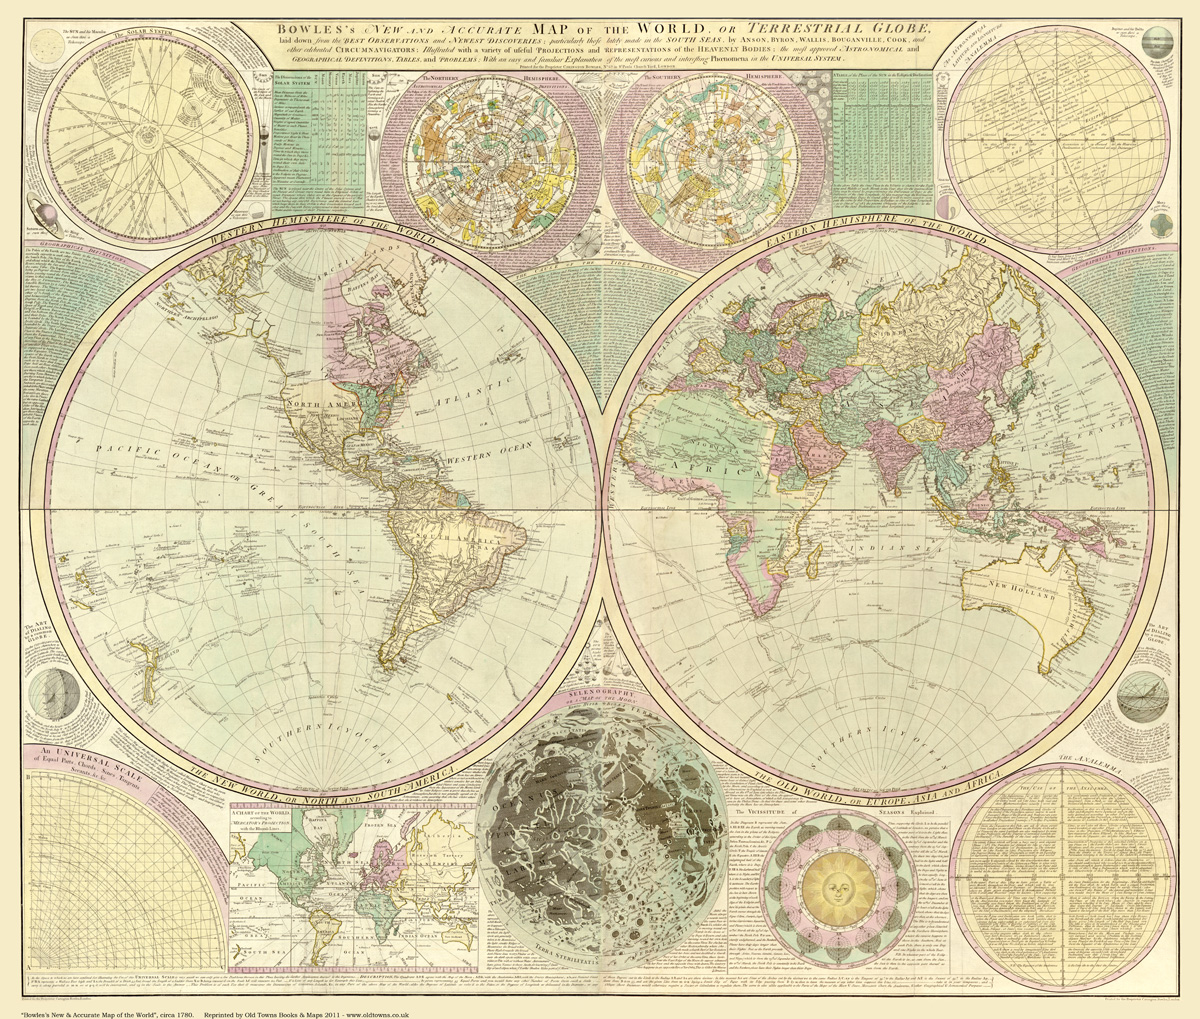 Bowle 39 s New and Accurate Map of the World circa 1780